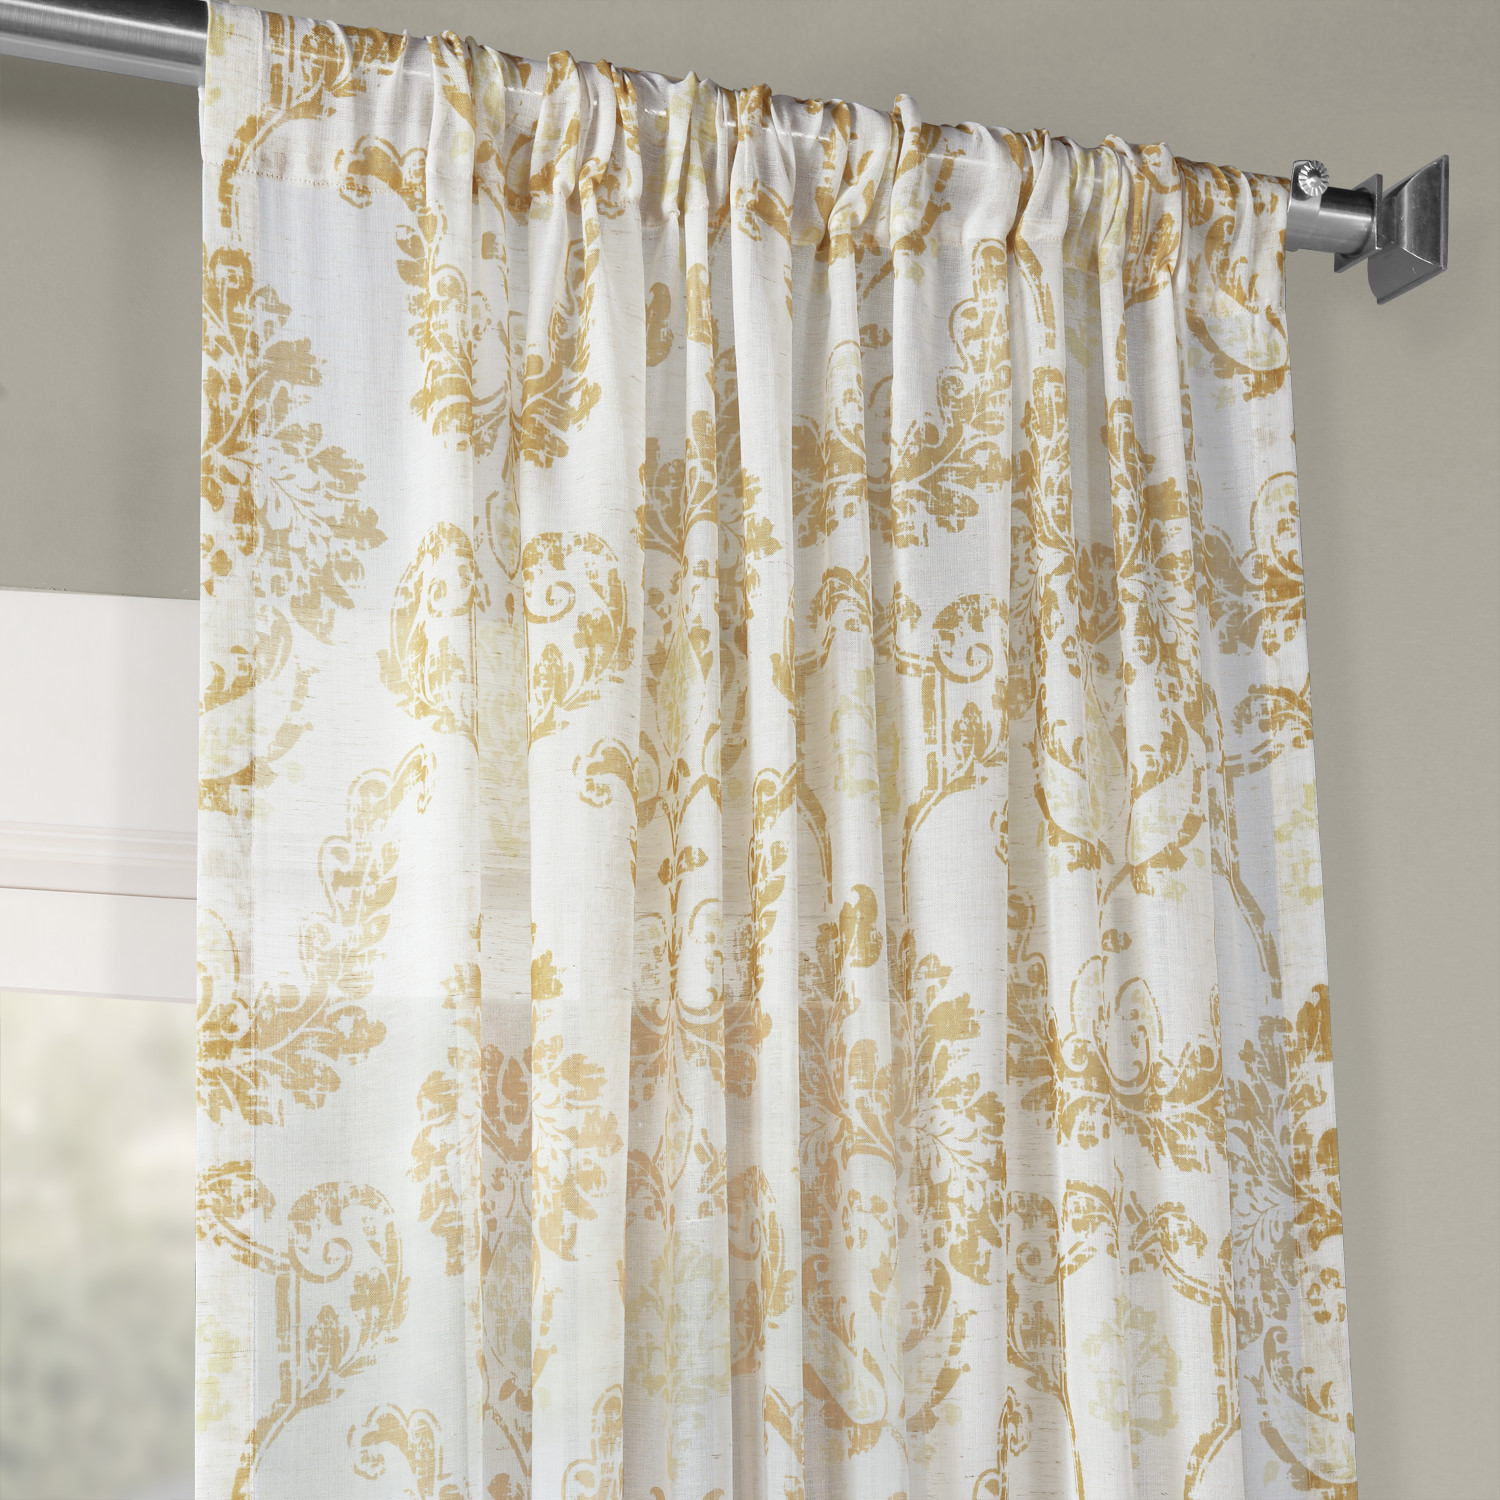 Terrace Gold Printed Faux Linen Sheer Curtain